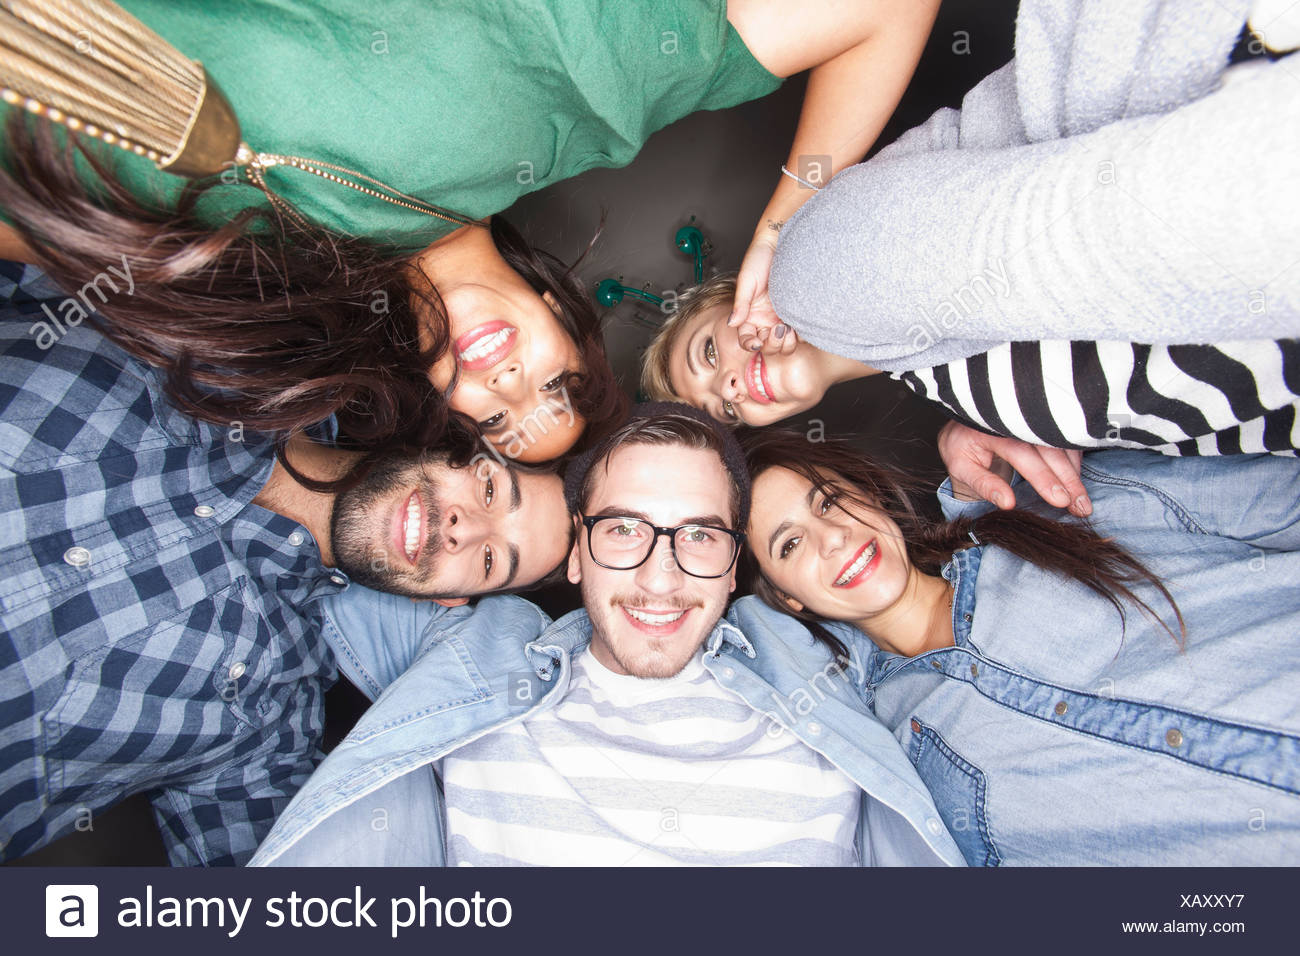 Friends smiling together in circle - Stock Image